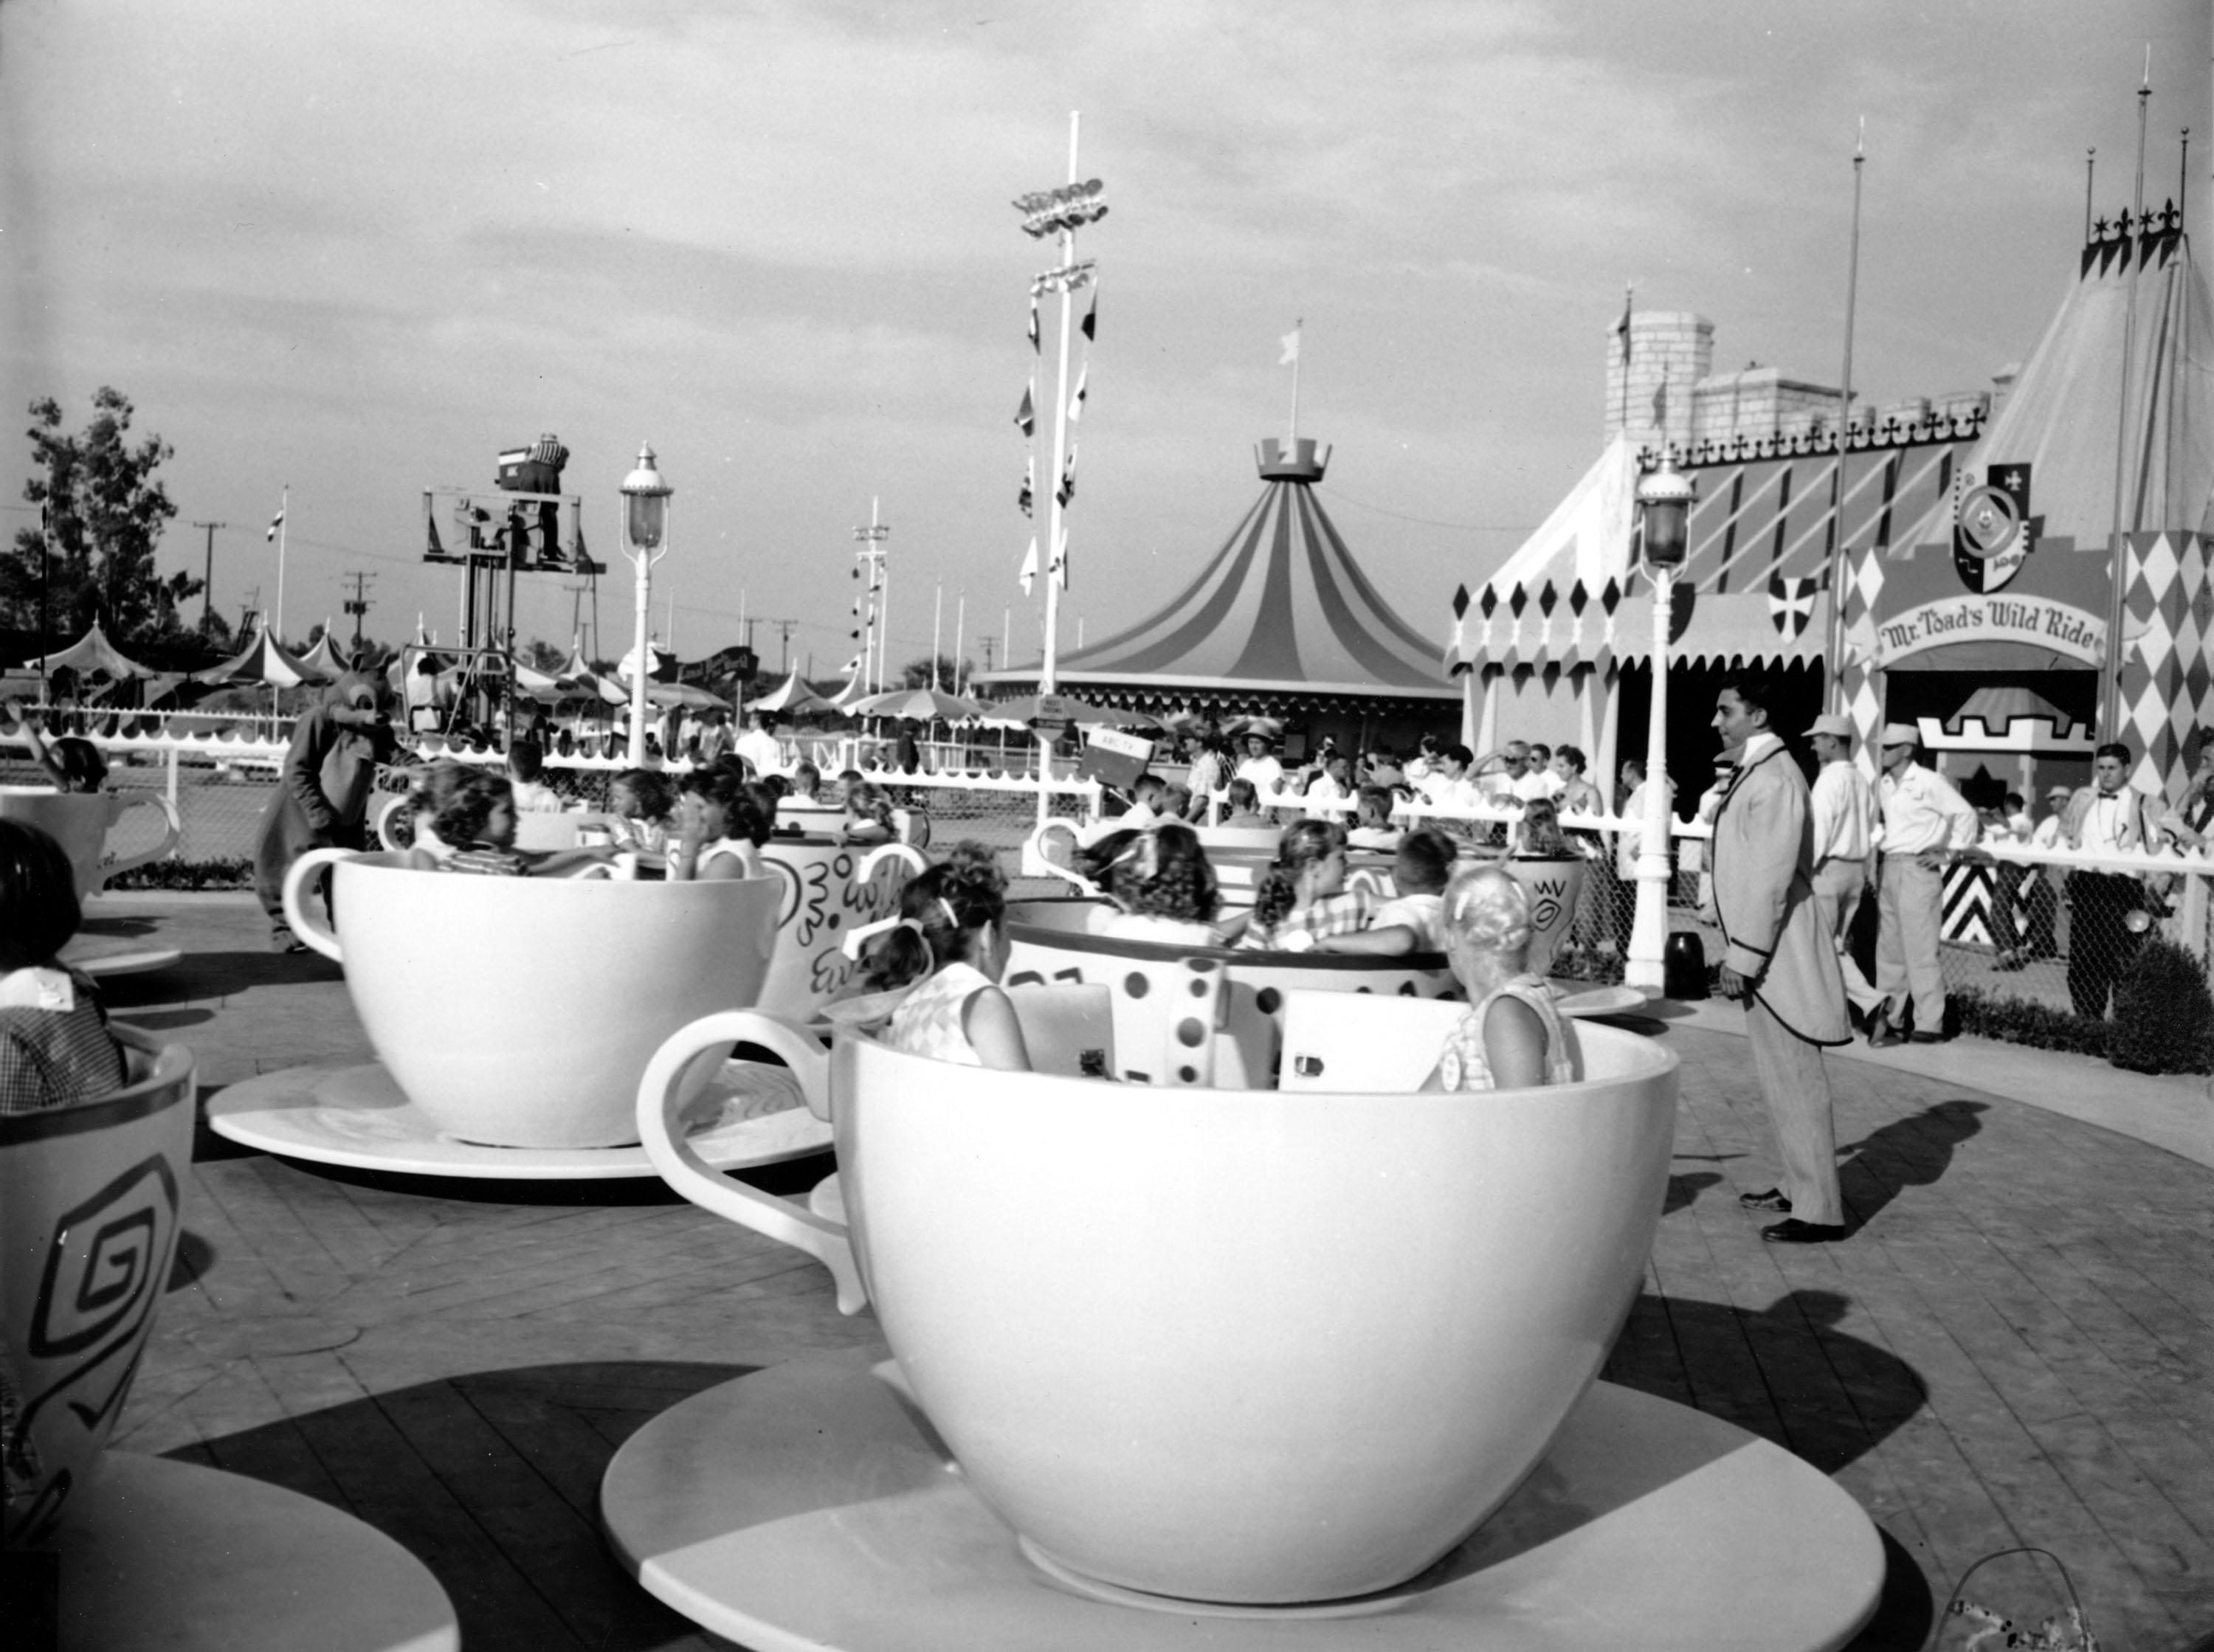 Slide 4 of 33: Children are enjoying the cup and saucer ride in Disneyland in Anaheim, Calif., on July 19, 1955. (AP Photo)